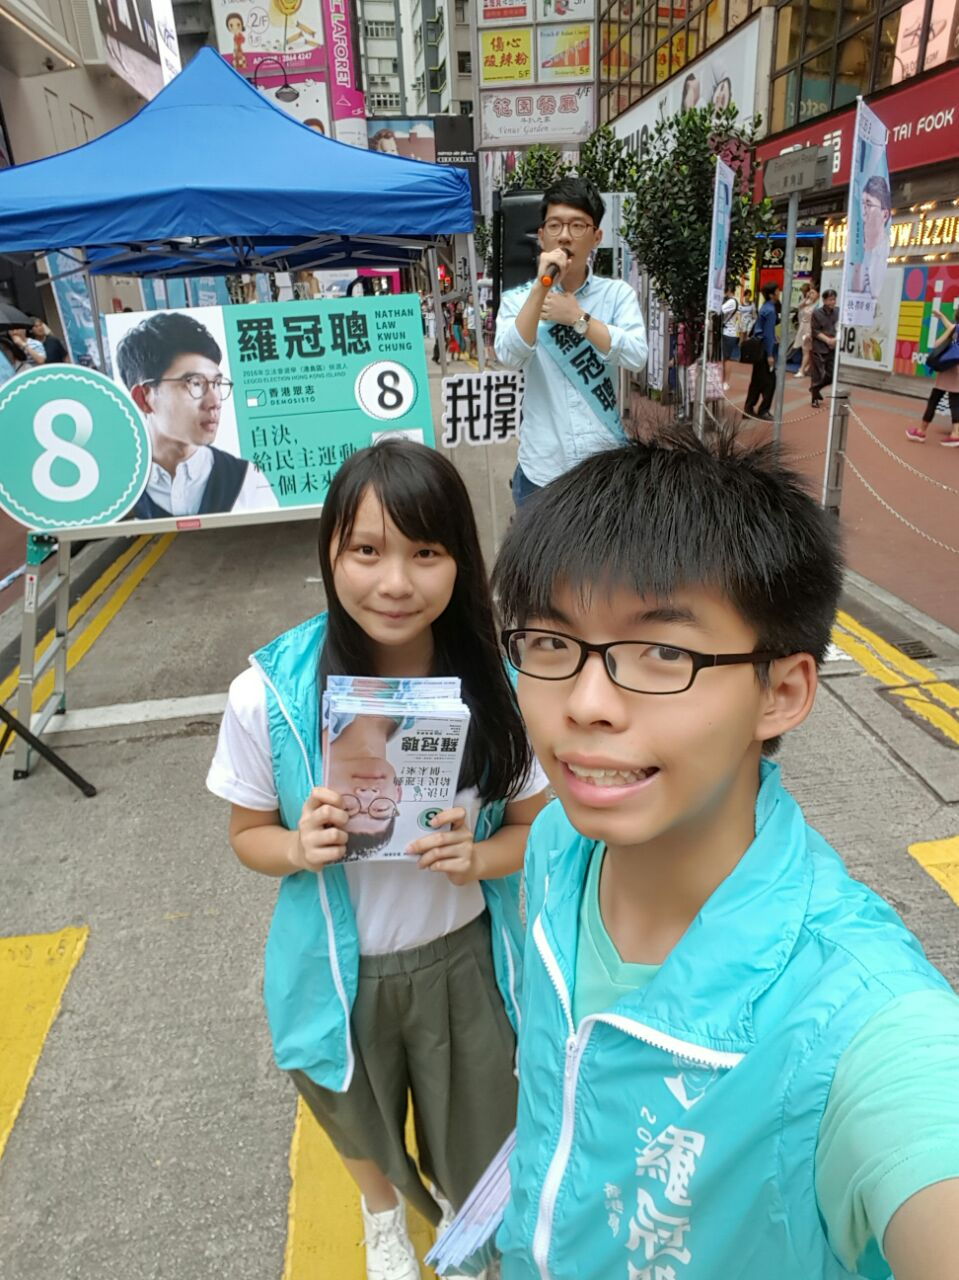 Agnes Chow Ting (left) and Joshua Wong (right) on the street campaigning for Demosisto's Chairman, Nathan Law (back). (Photo: Facebook/Joshua Wong)